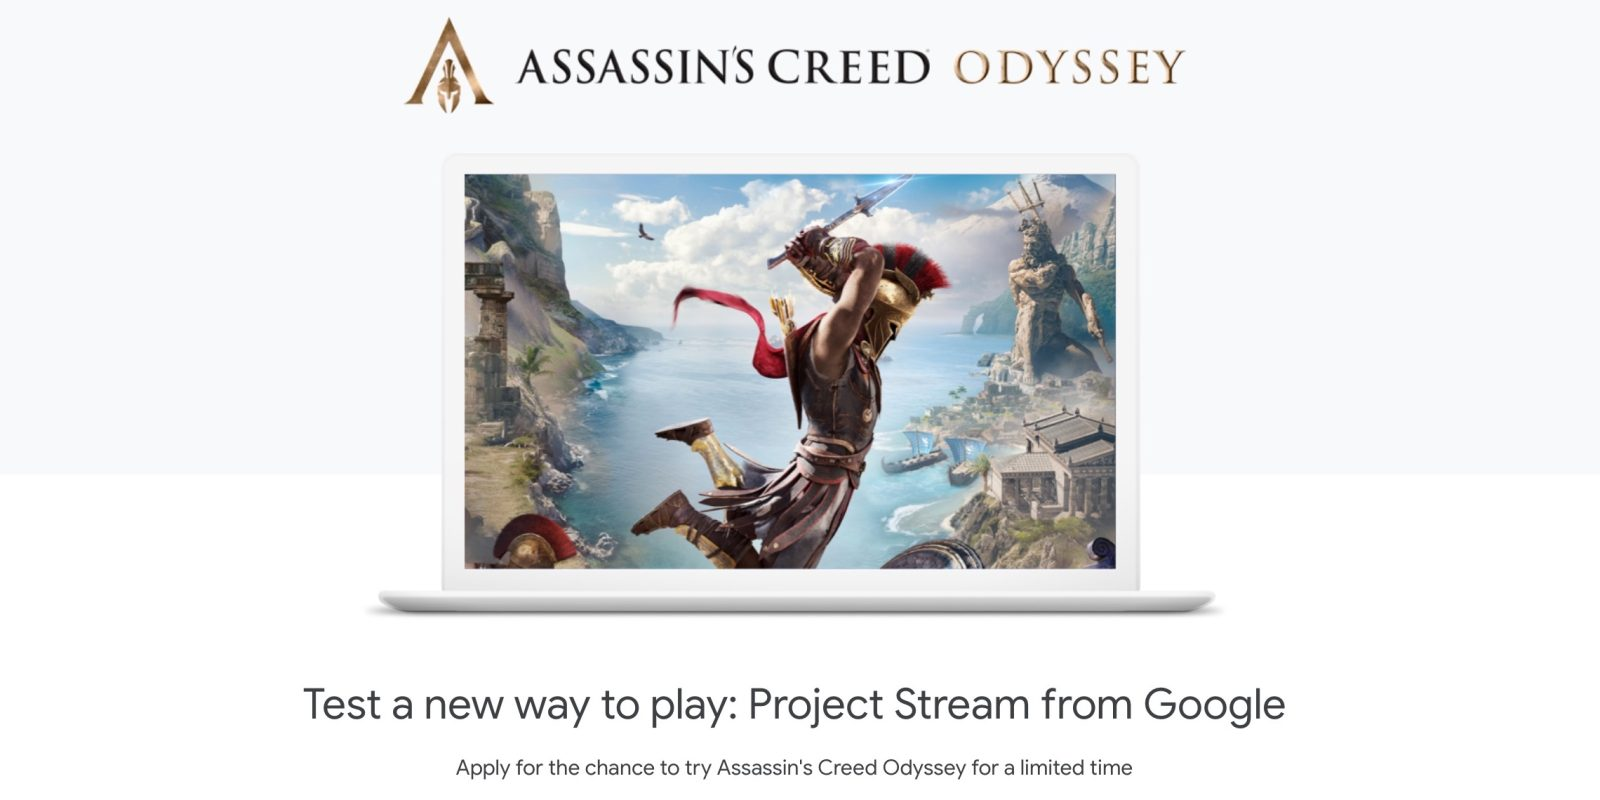 Google's Project Stream will let you play 'Assassin's Creed Odyssey